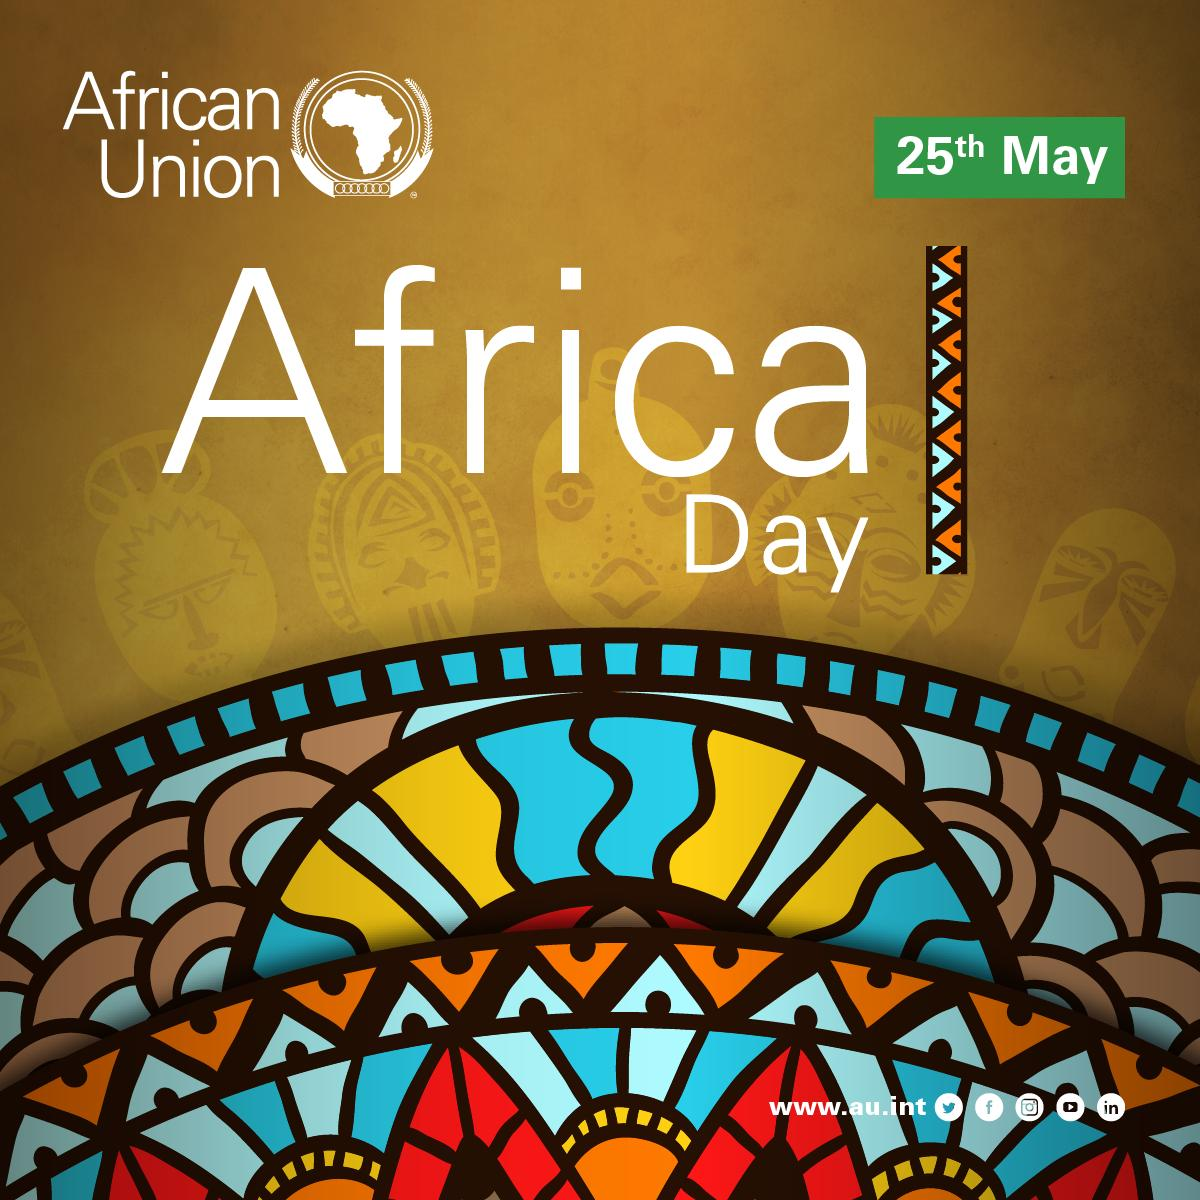 Message of H. E. Moussa Faki Mahamat Chairperson of the African Union Commission on the occasion of the Africa Day Celebration under the Theme: